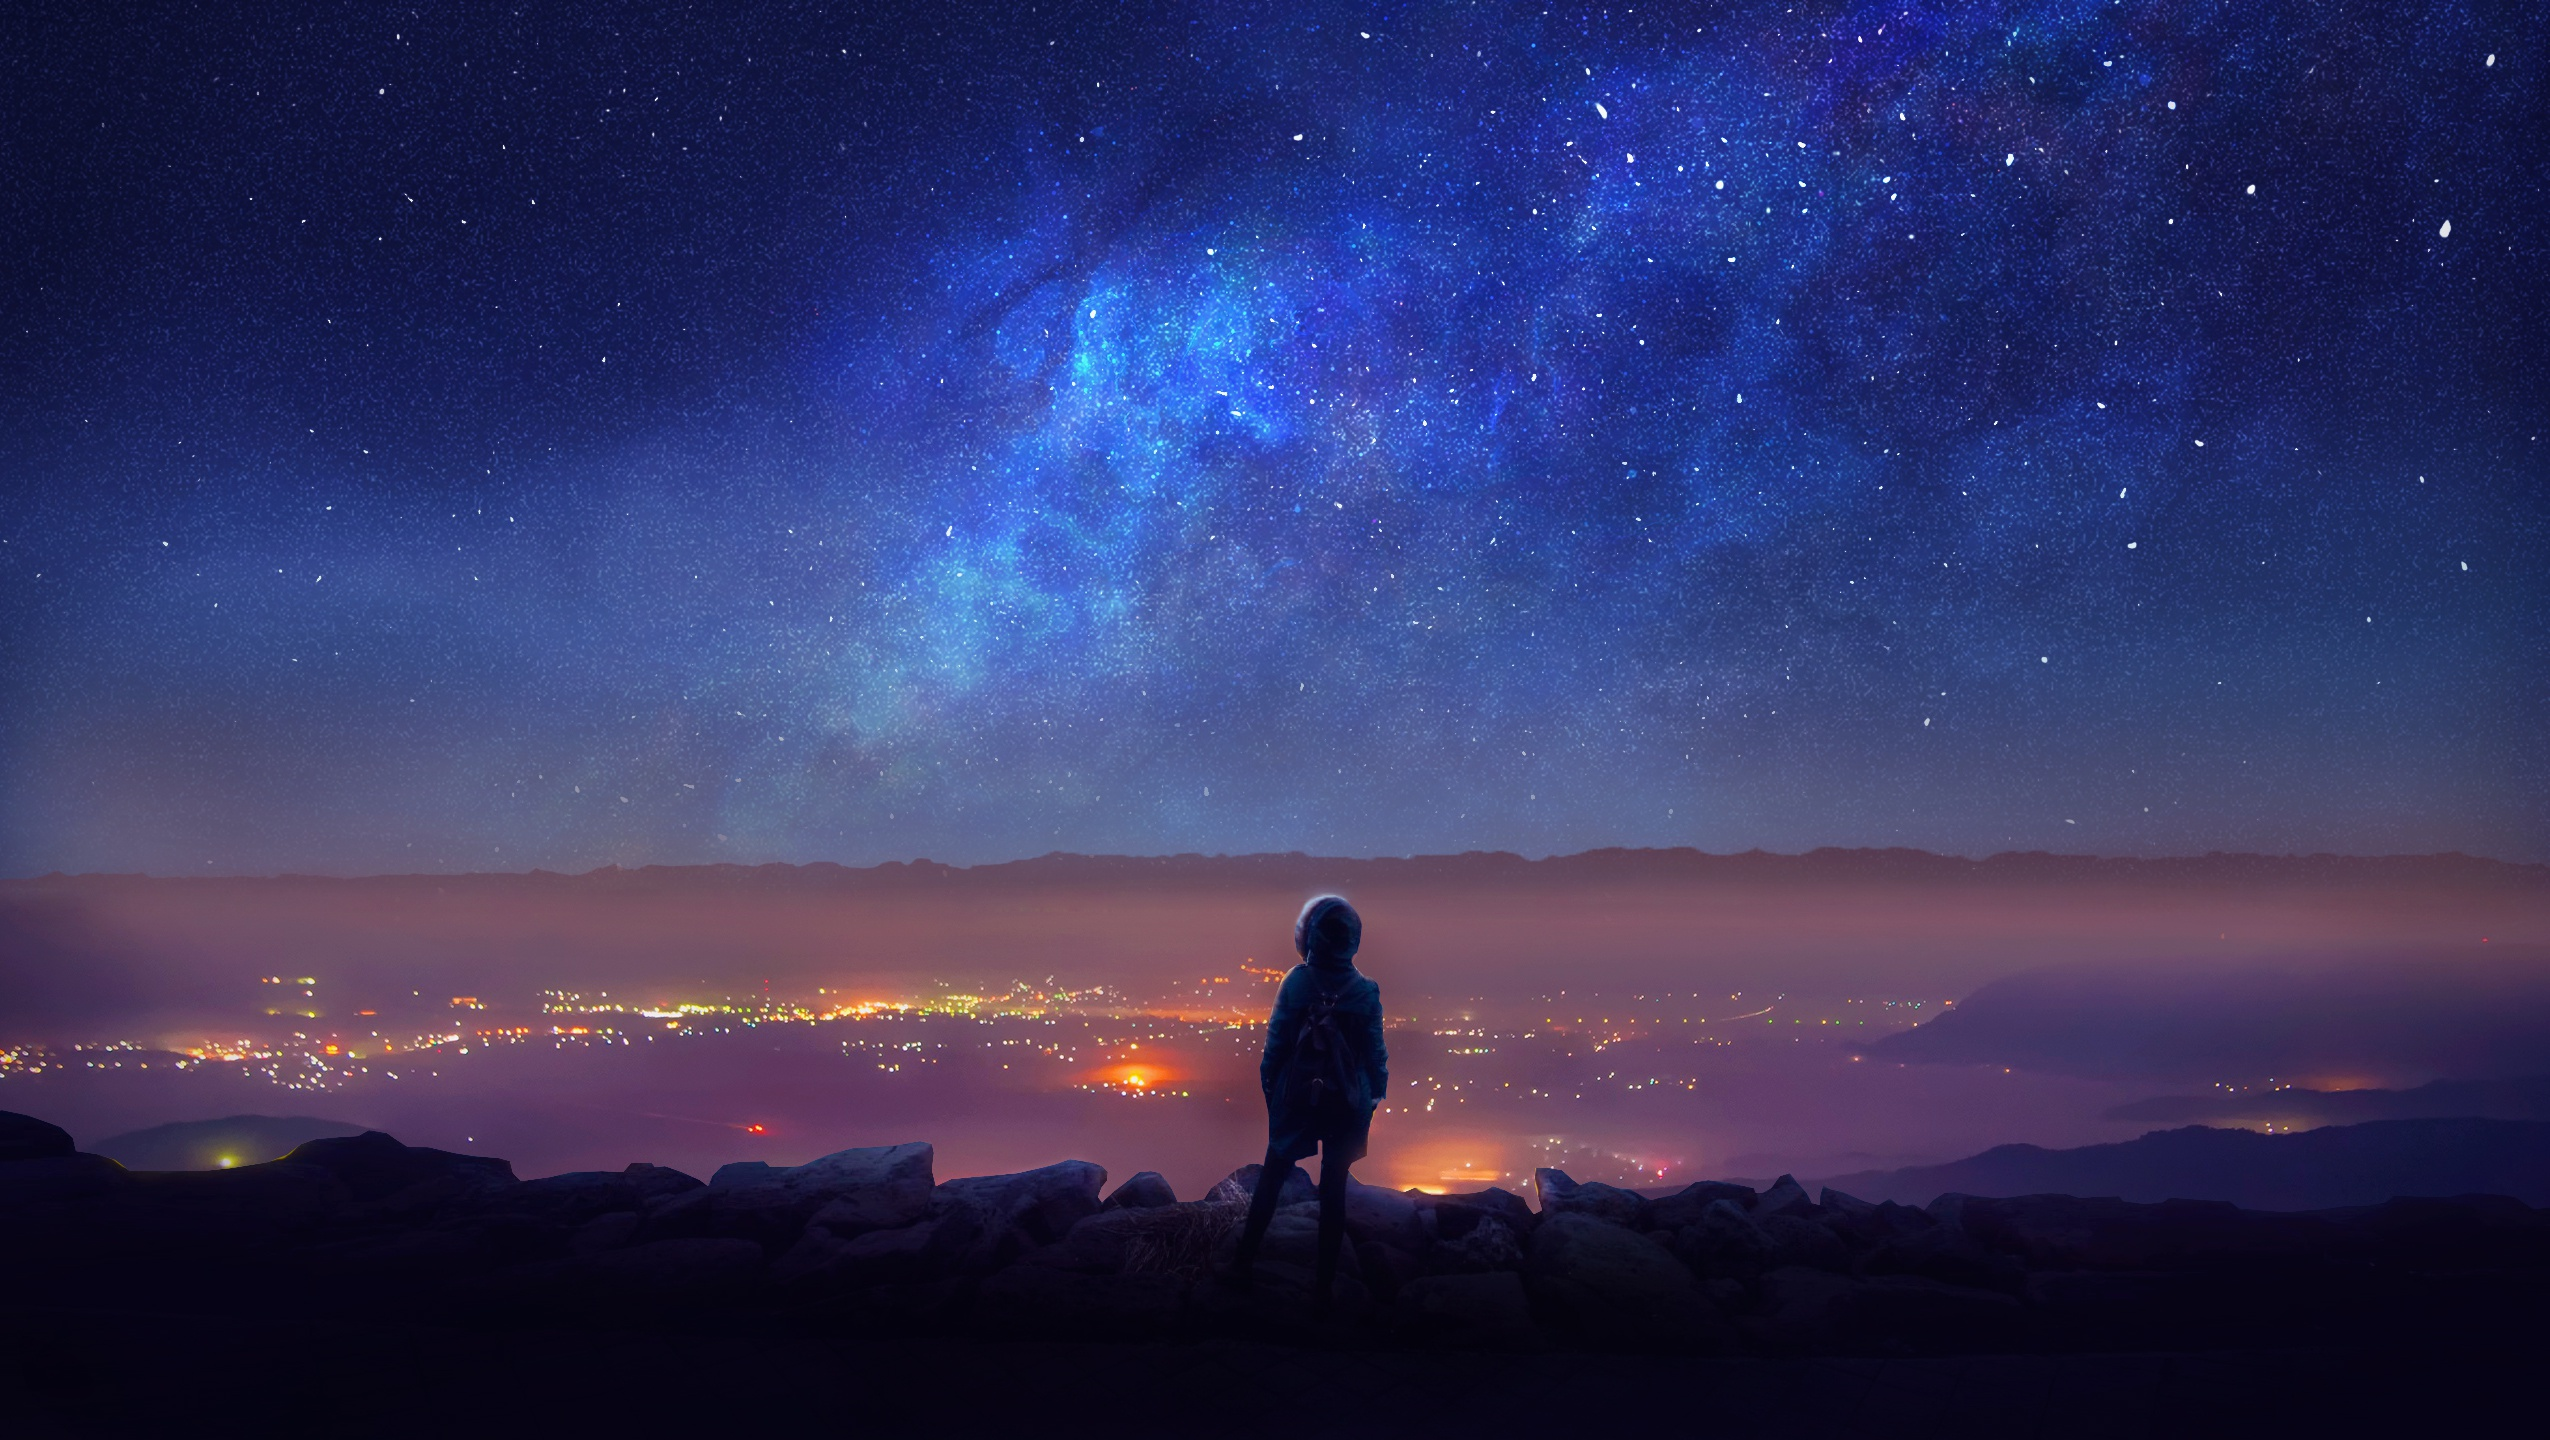 2550x1440 space